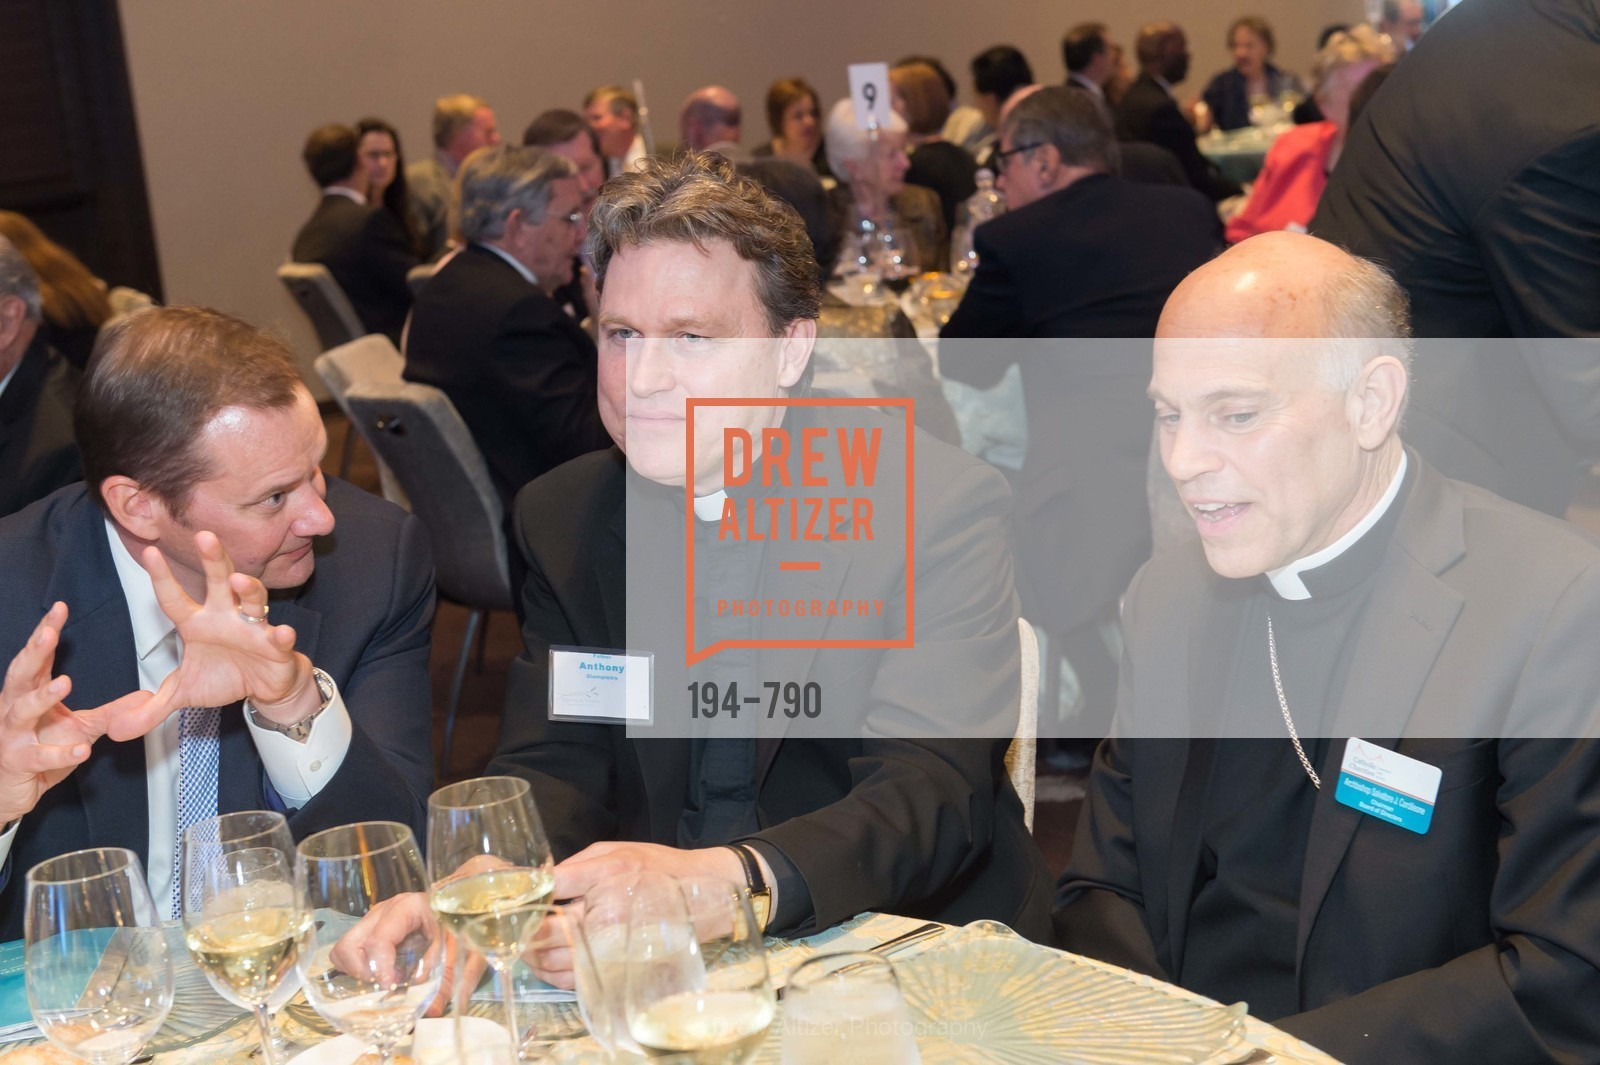 Father Anthony Giampietro, Archbishop Salvatore Cordileone, Post War and Contemporary Preview at HEDGE GALLERY, US, April 16th, 2015,Drew Altizer, Drew Altizer Photography, full-service agency, private events, San Francisco photographer, photographer california